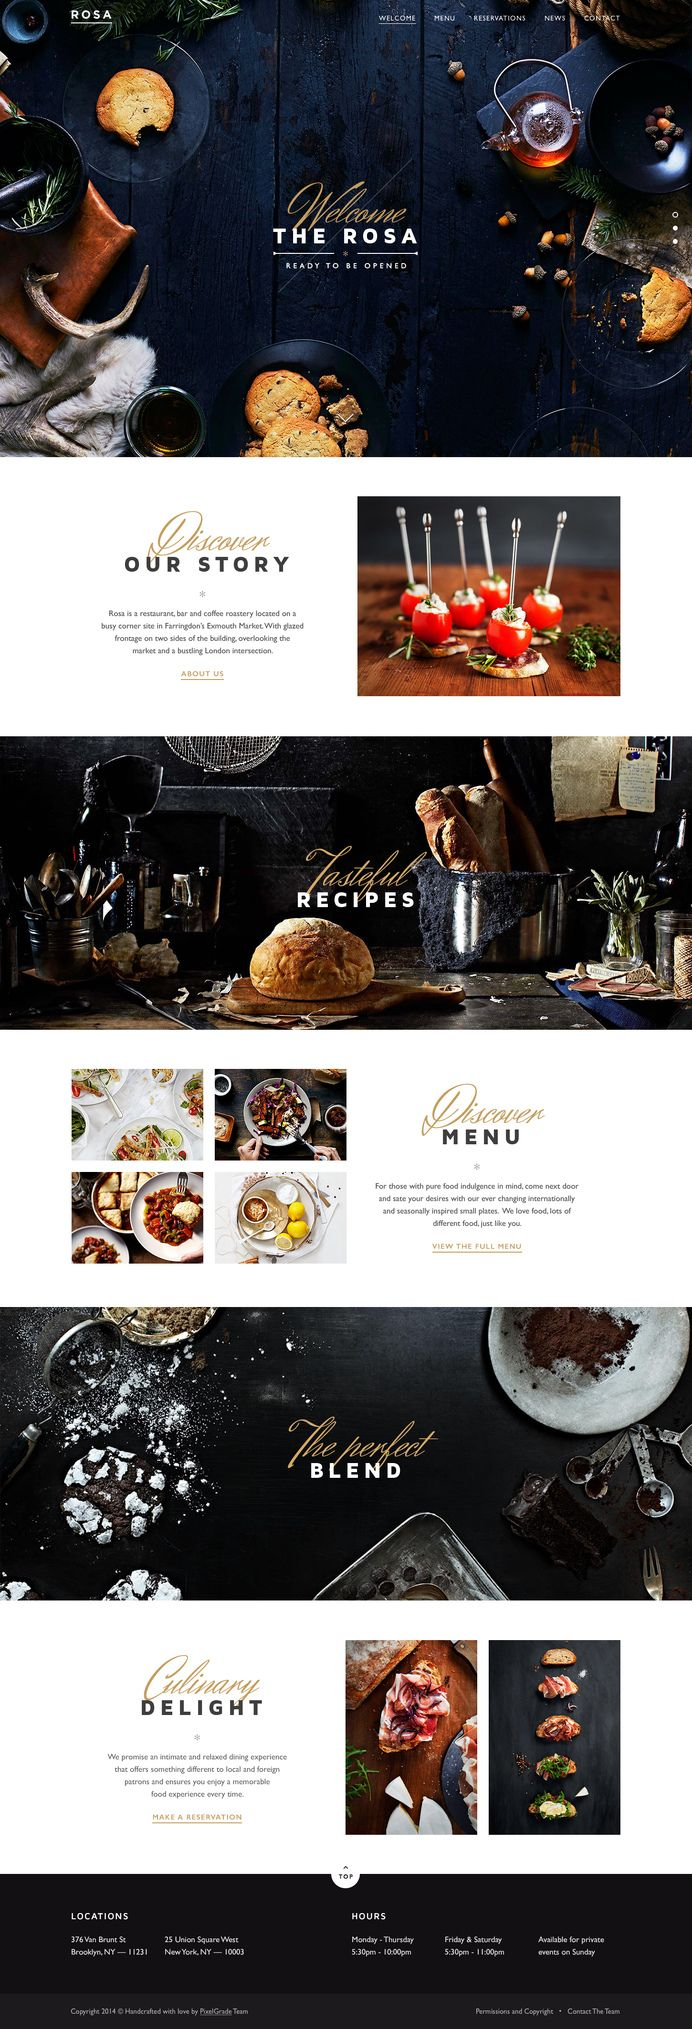 The ROSA | #webdesign #it #web #design #layout #userinterface #website #webdesign < repinned by www.BlickeDeeler.de | Visit our website www.blickedeeler.de/leistungen/webdesign